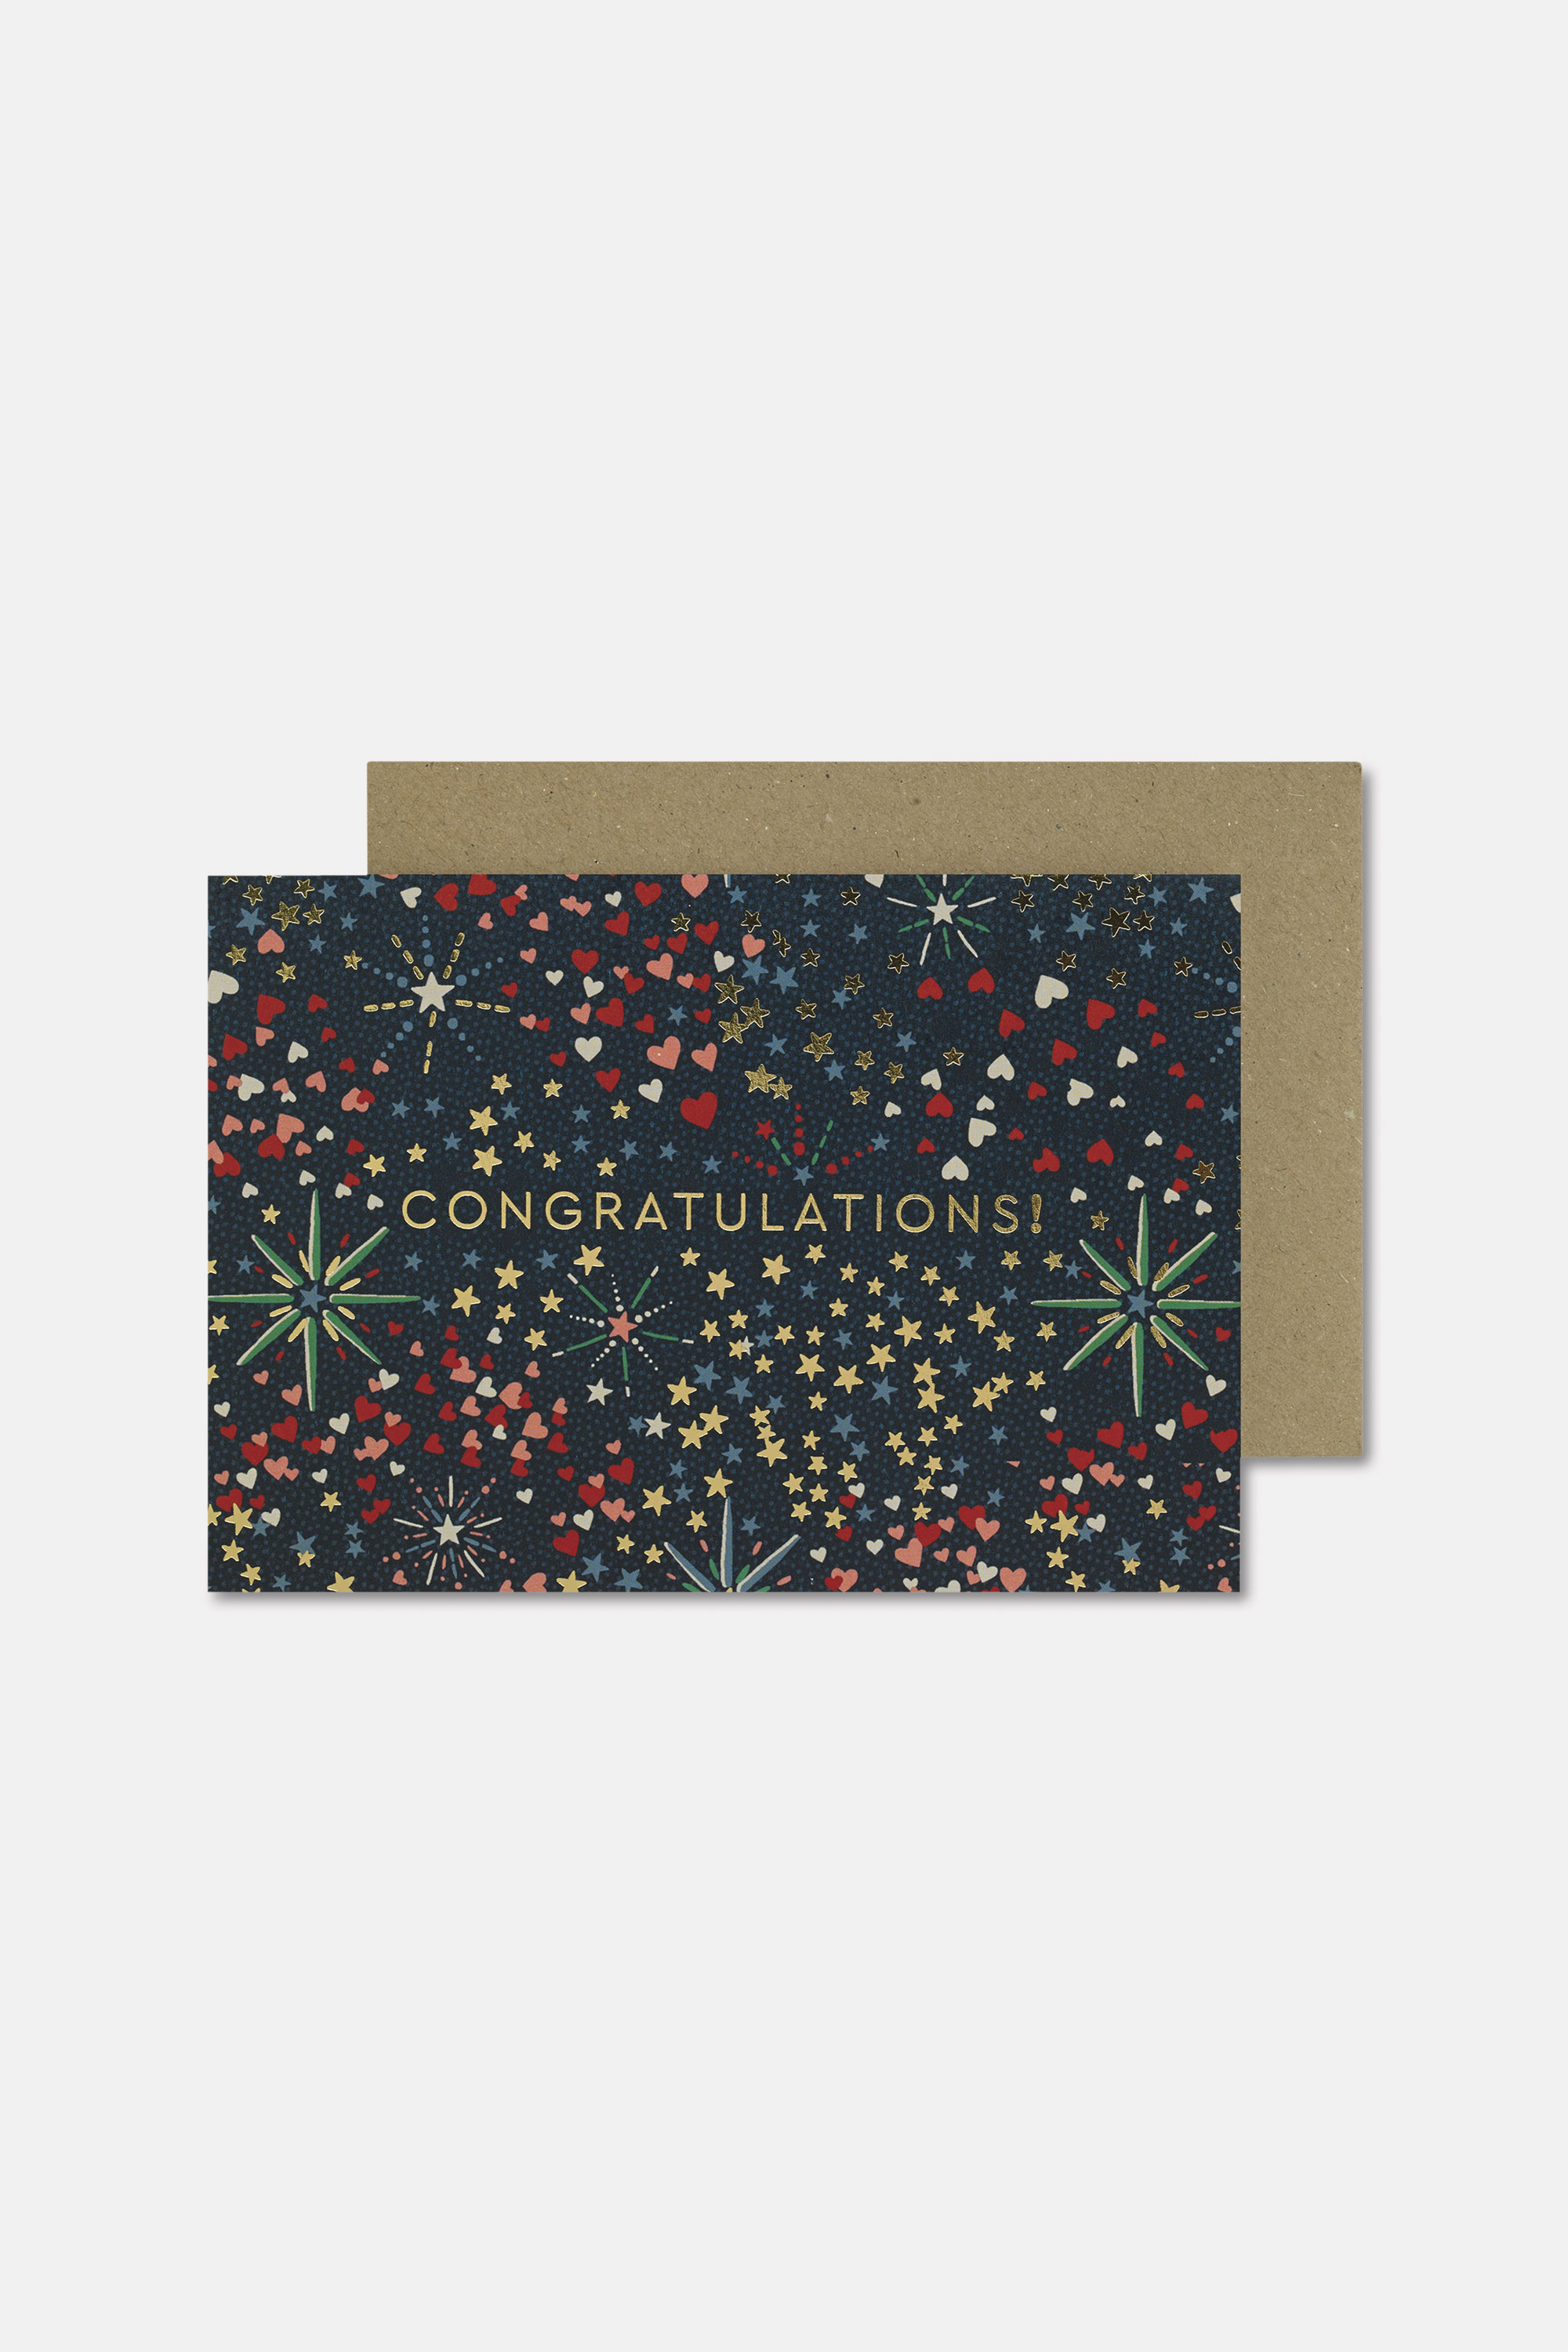 Cath Kidston Congratulations Card in Navy, Midnight Stars, Paper